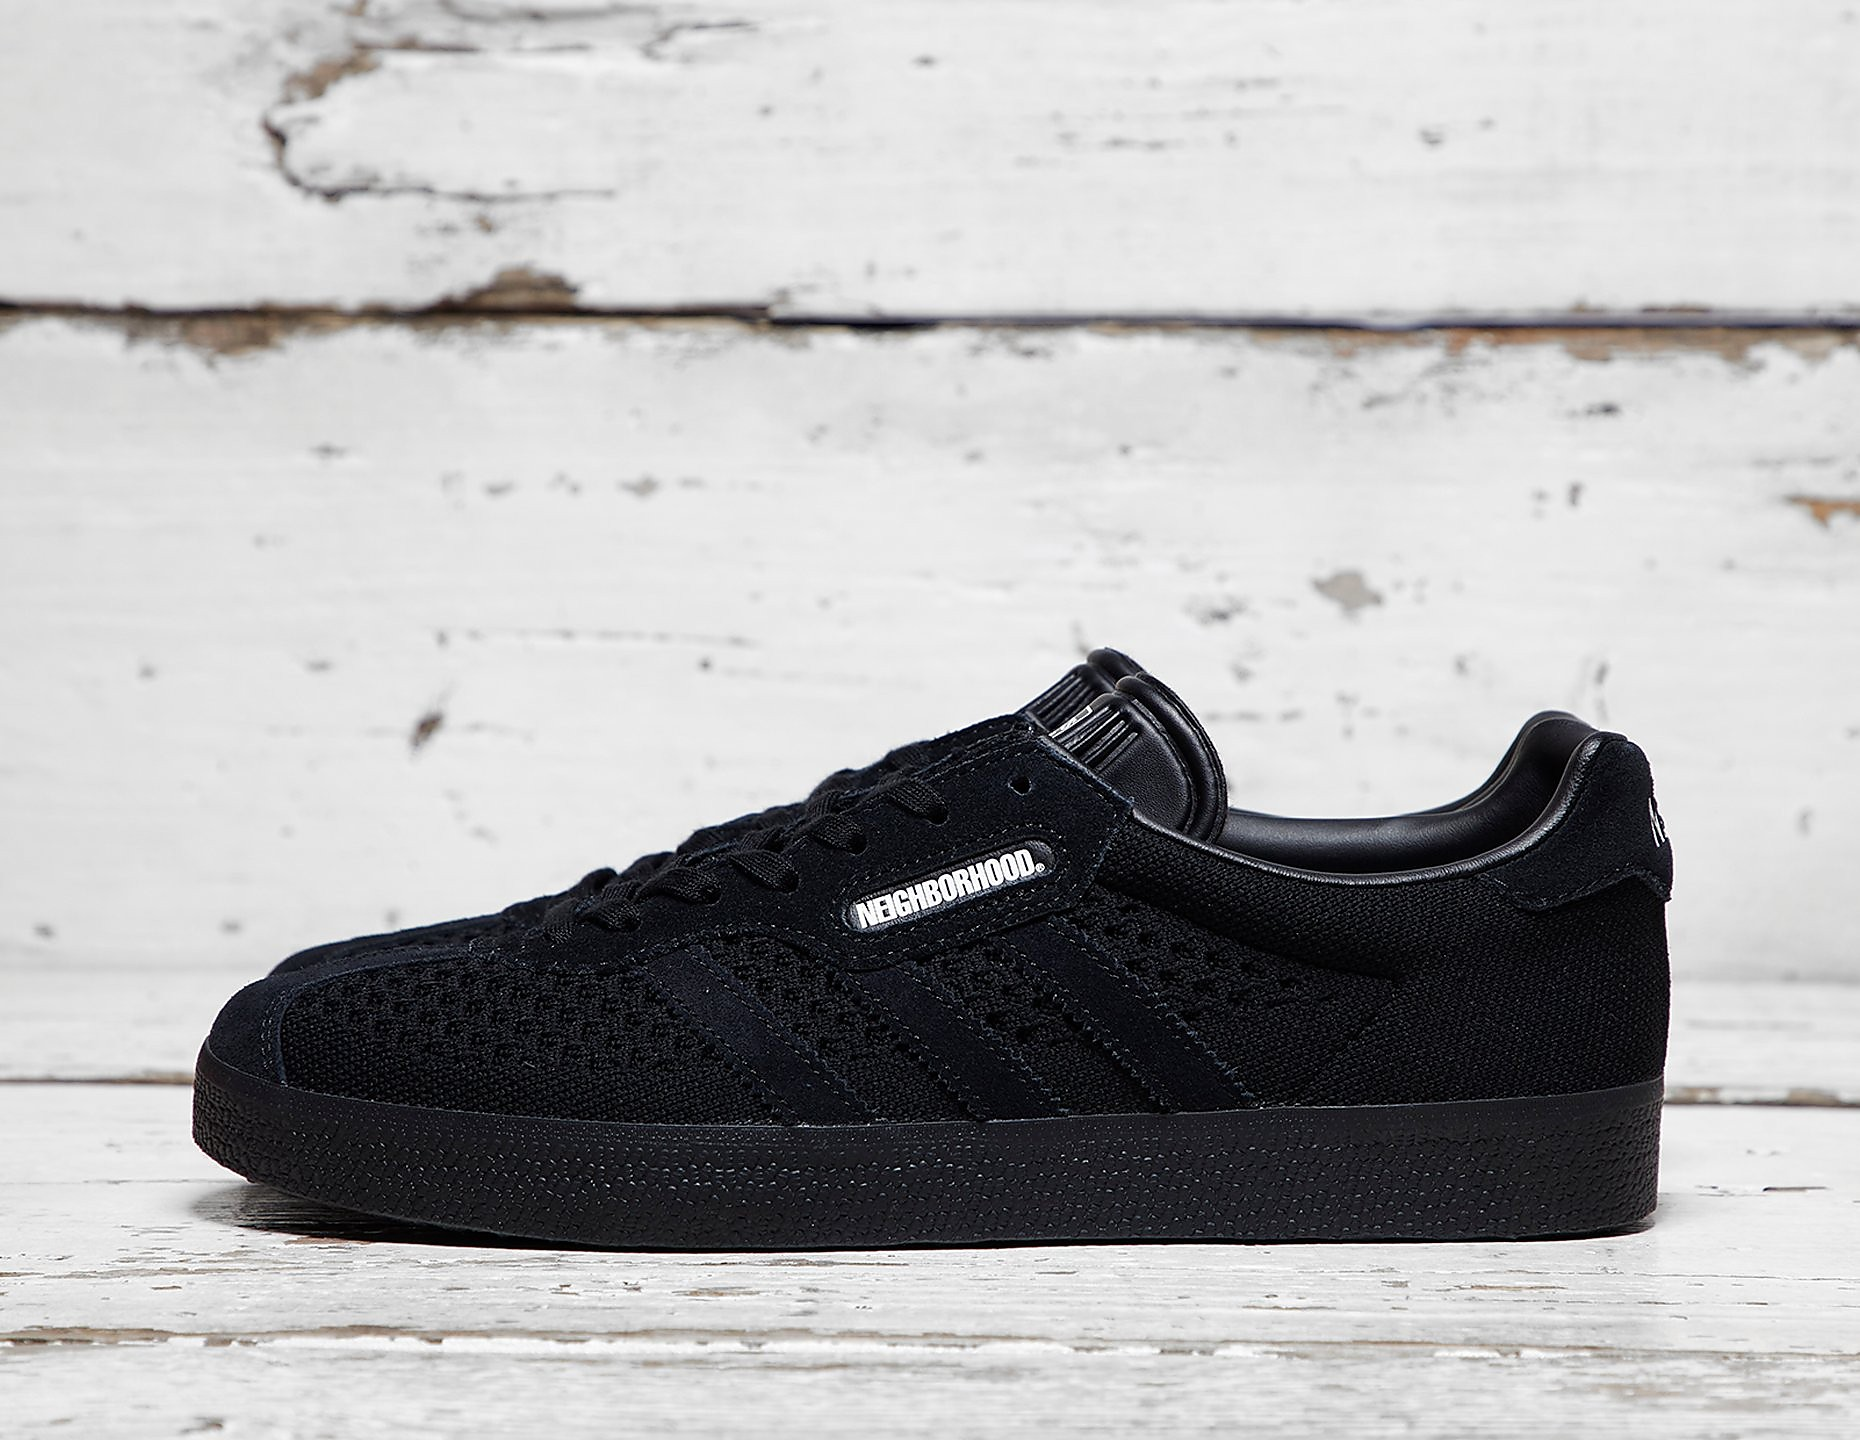 adidas Originals x Neighborhood Gazelle Super